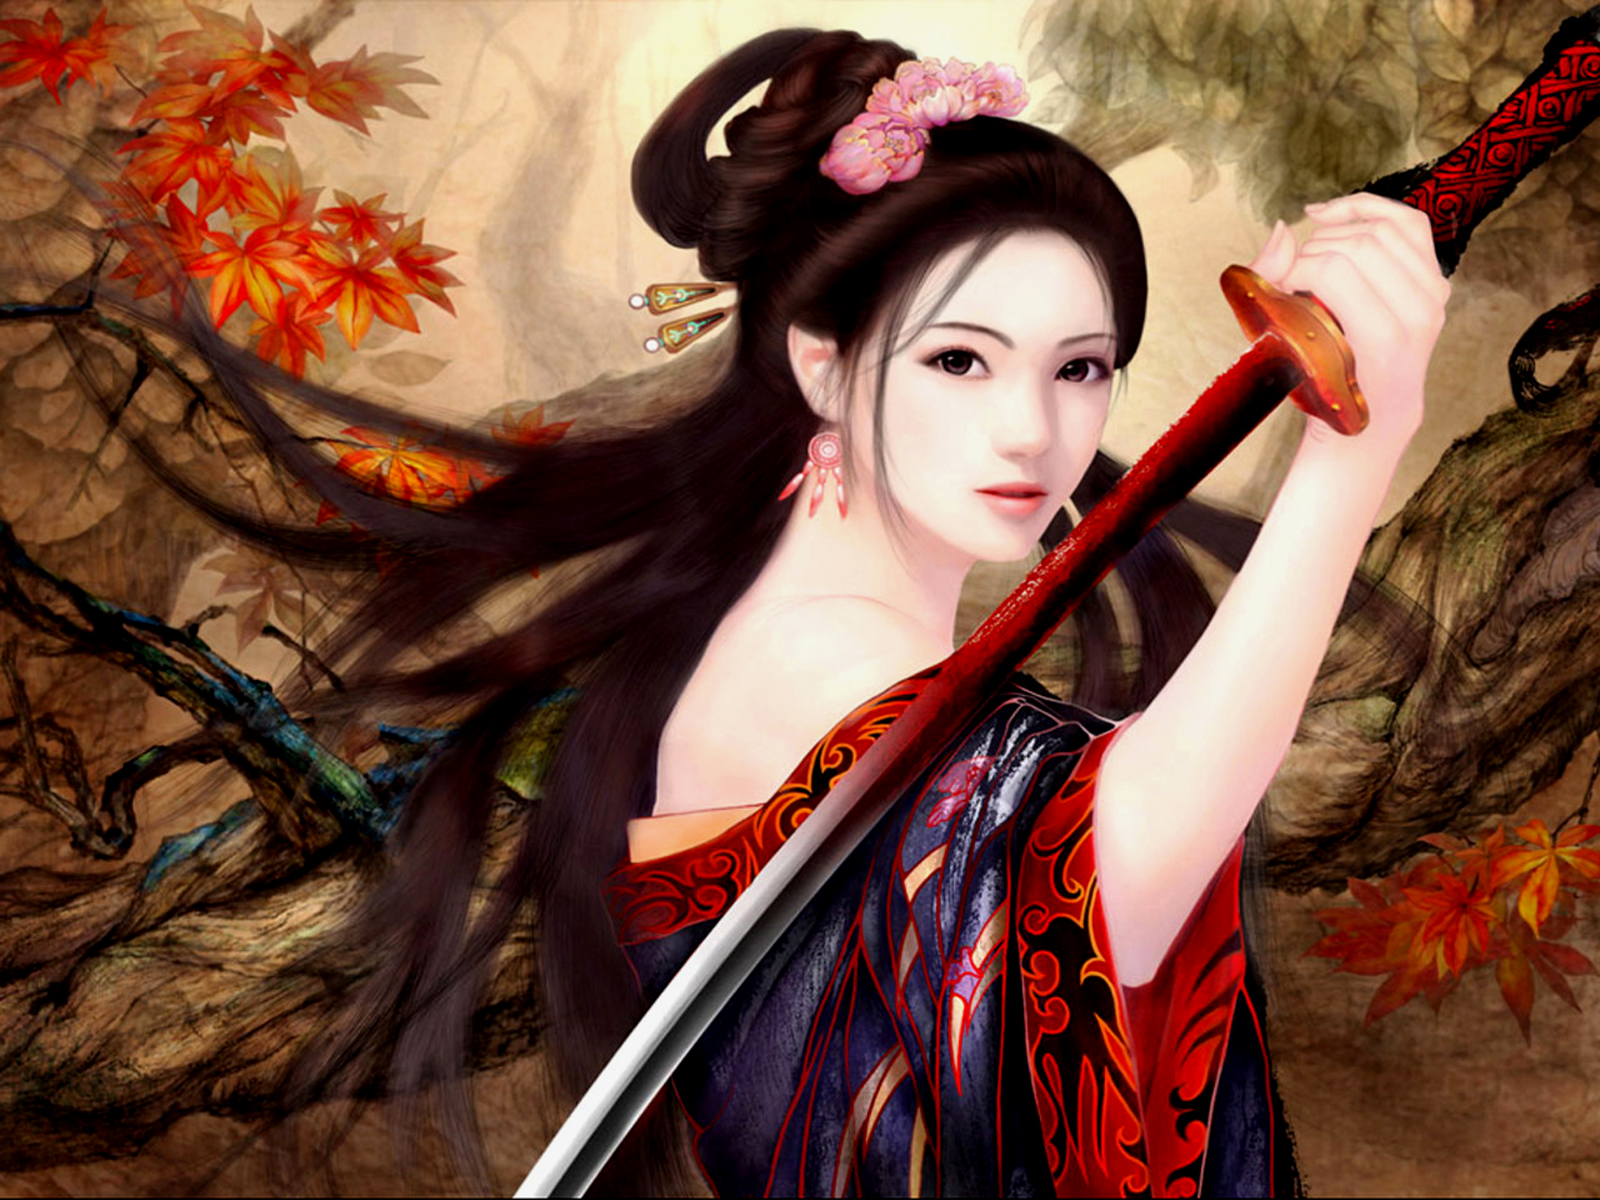 Fantasy - Women Warrior  - Daisy - Fighter Girl - Female Samurai Wallpaper